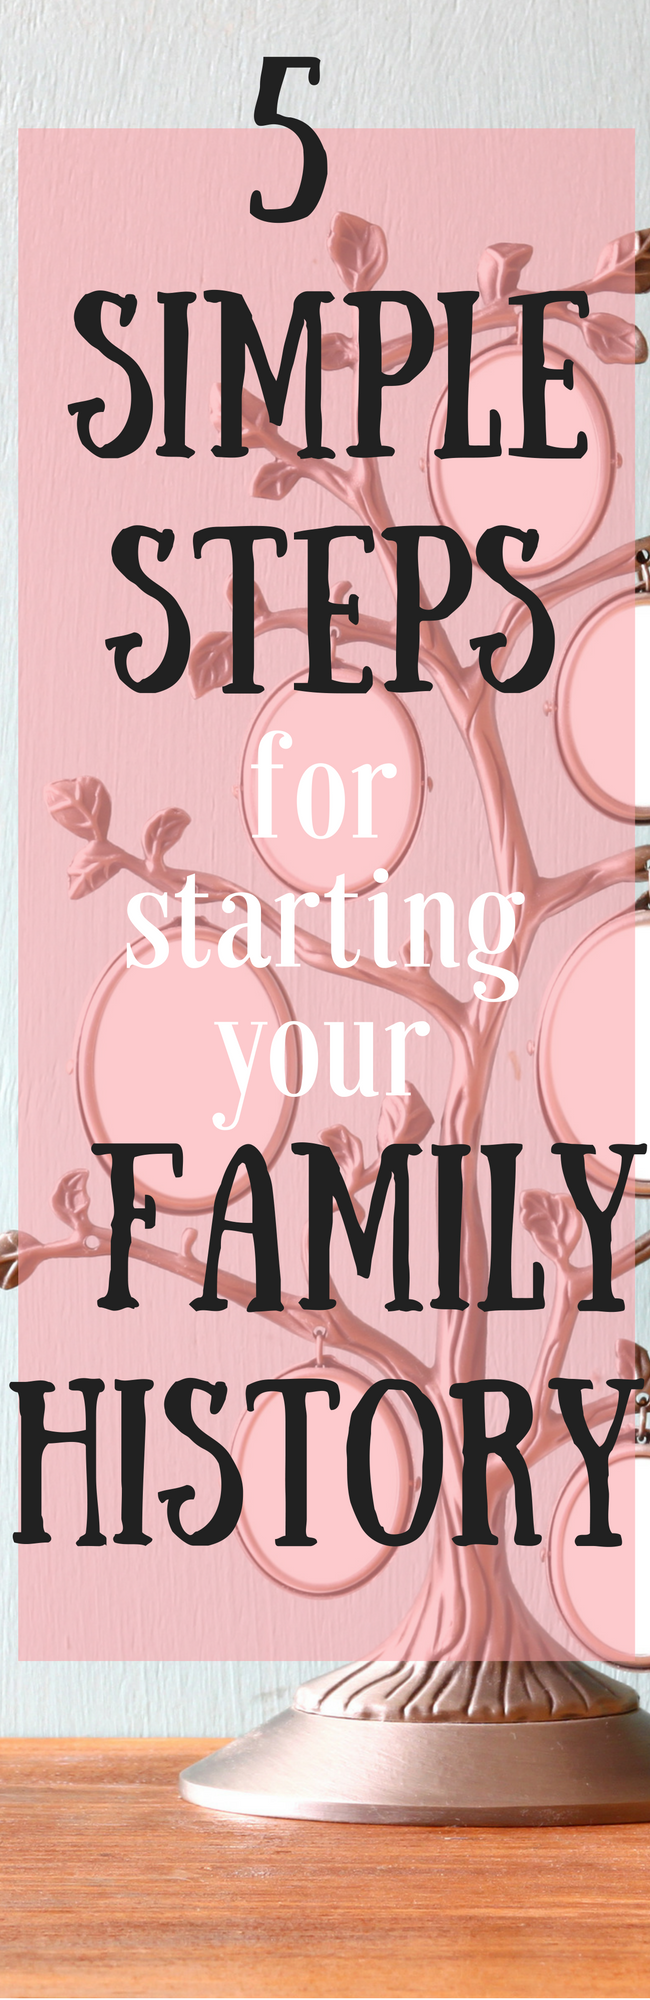 5 Simples steps for starting your family history - doing your Geneology research can really open up the doors of your ancestry. Here are a few tools for helping you get your family trees ready to go!